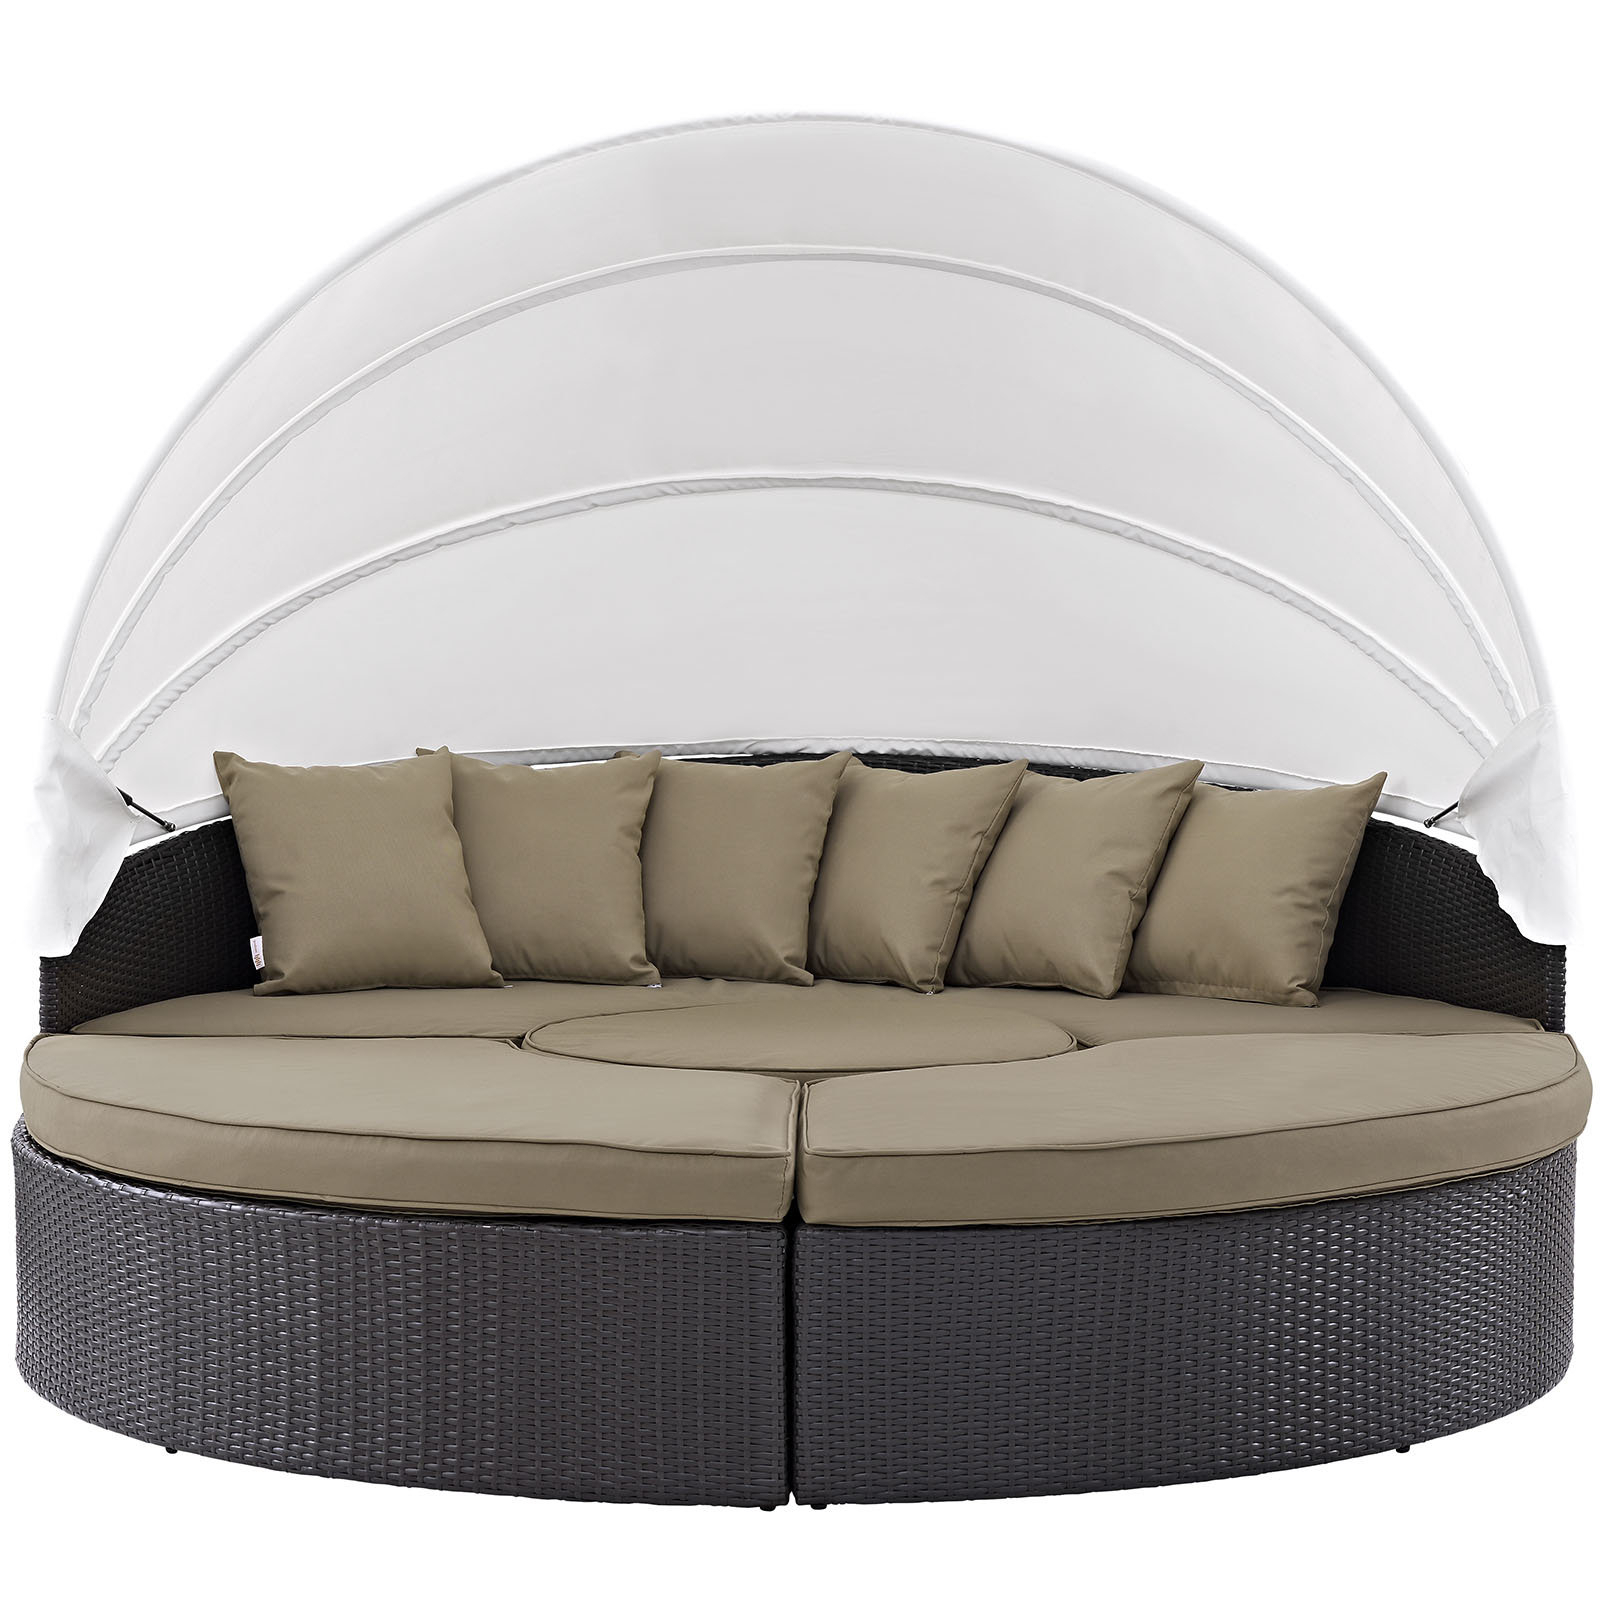 Brentwood Patio Daybed With Cushions In Well Known Freeport Patio Daybeds With Cushion (View 1 of 20)